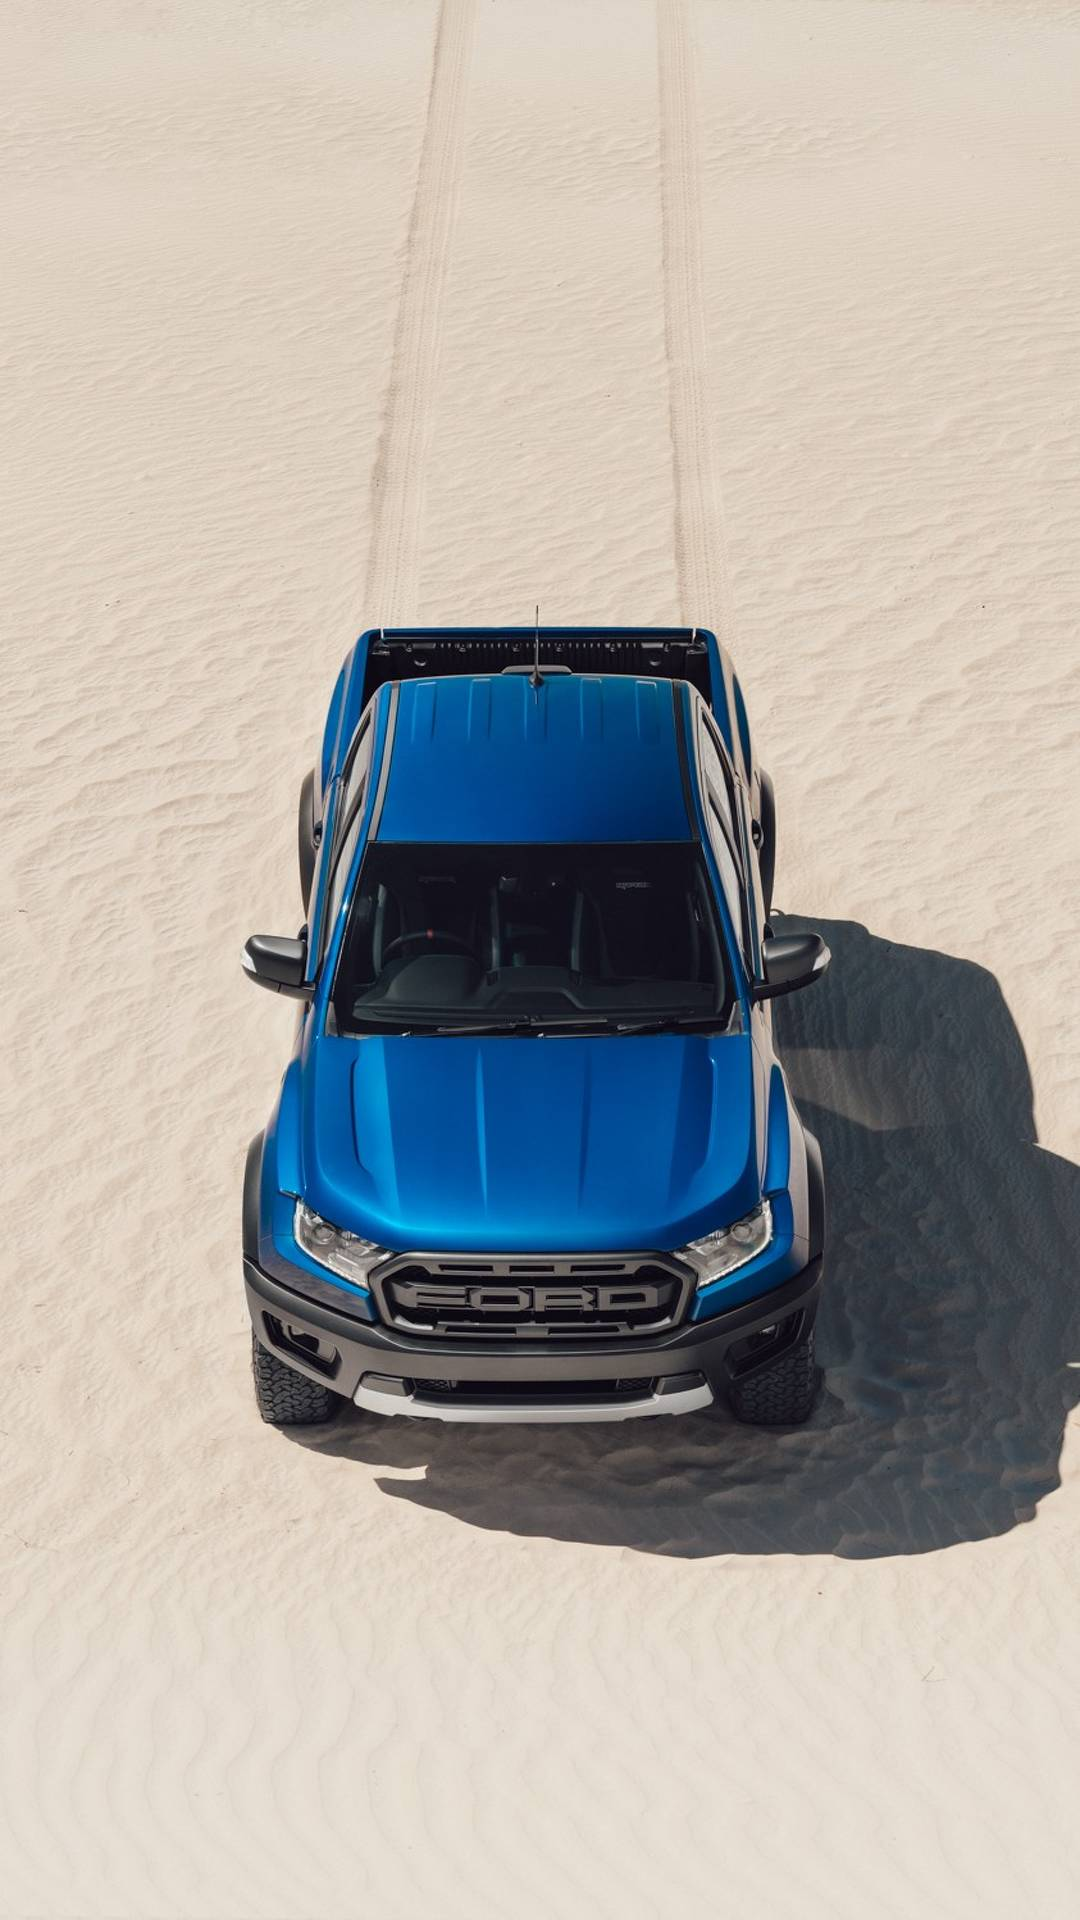 Ford Ranger Raptor 2018 (6)